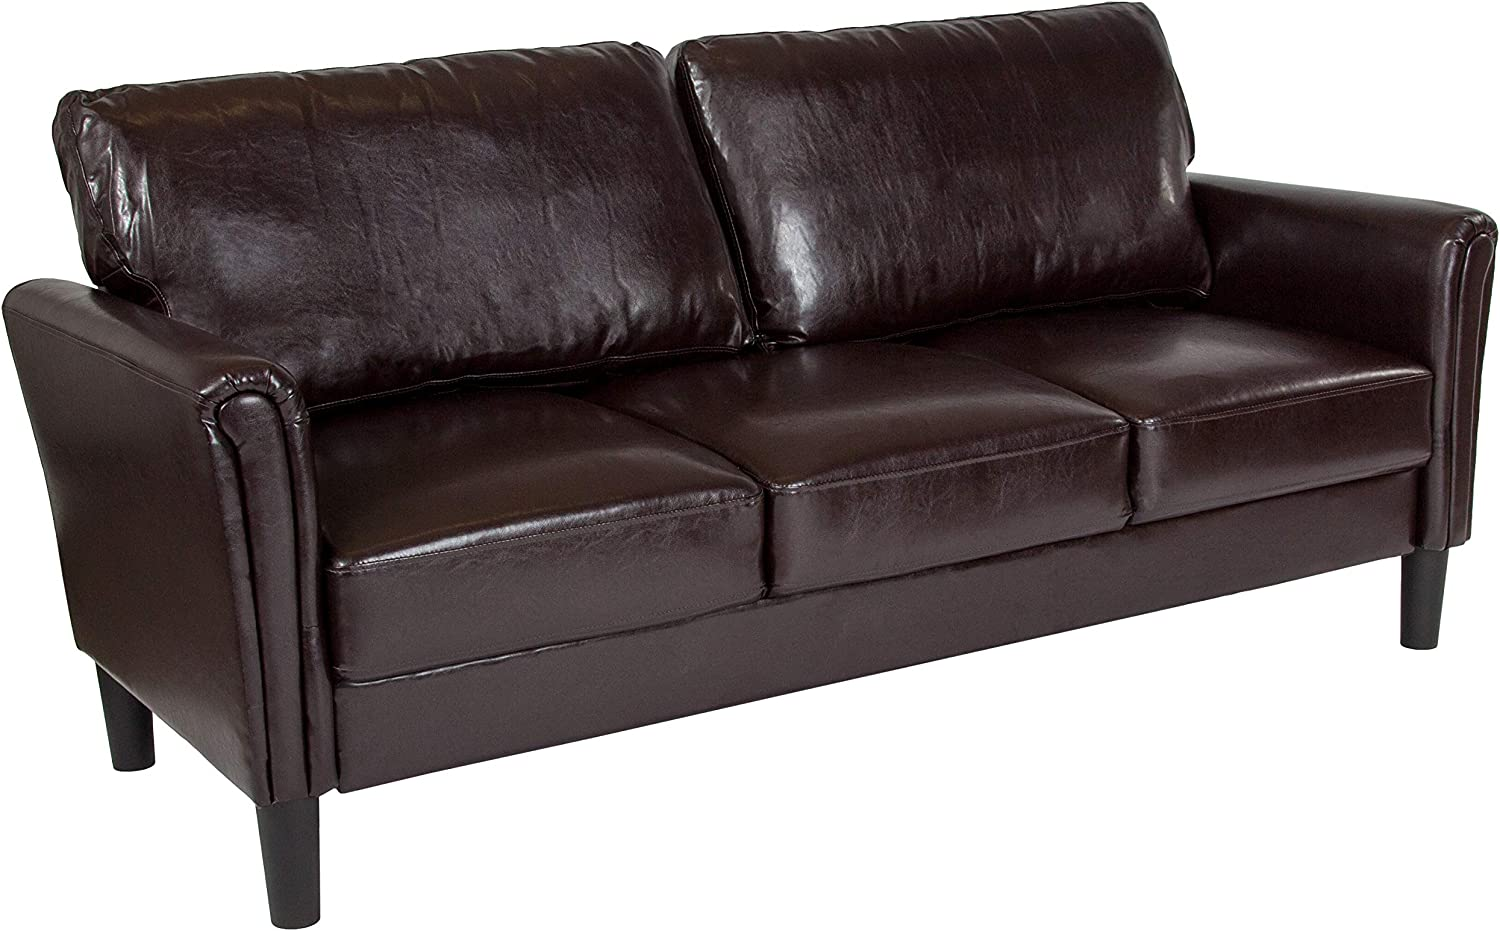 Flash Furniture Bari Upholstered Sofa in Brown LeatherSoft